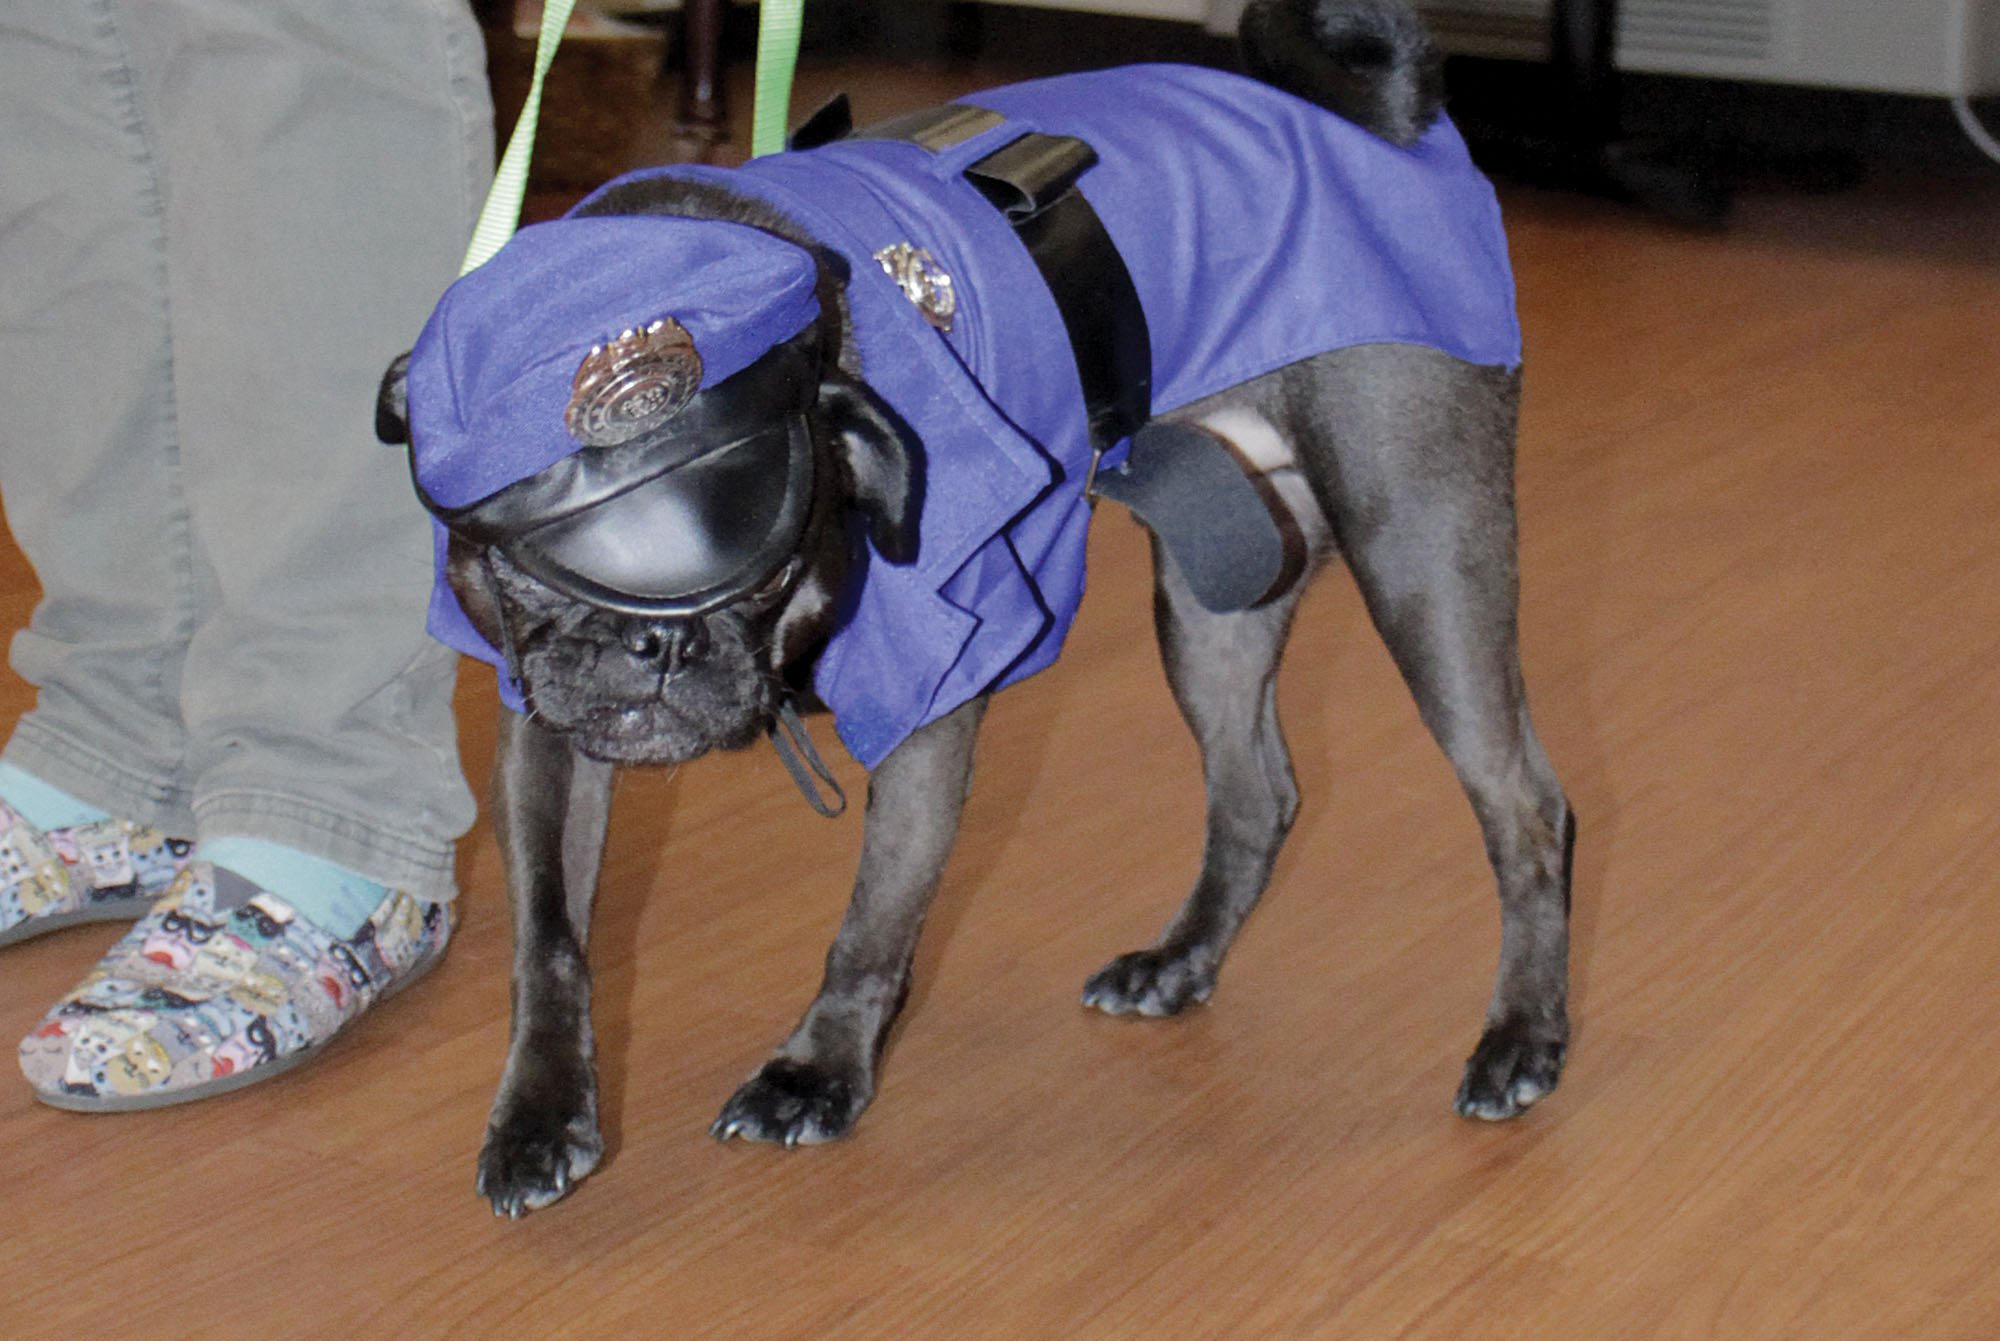 Archie models his police costume